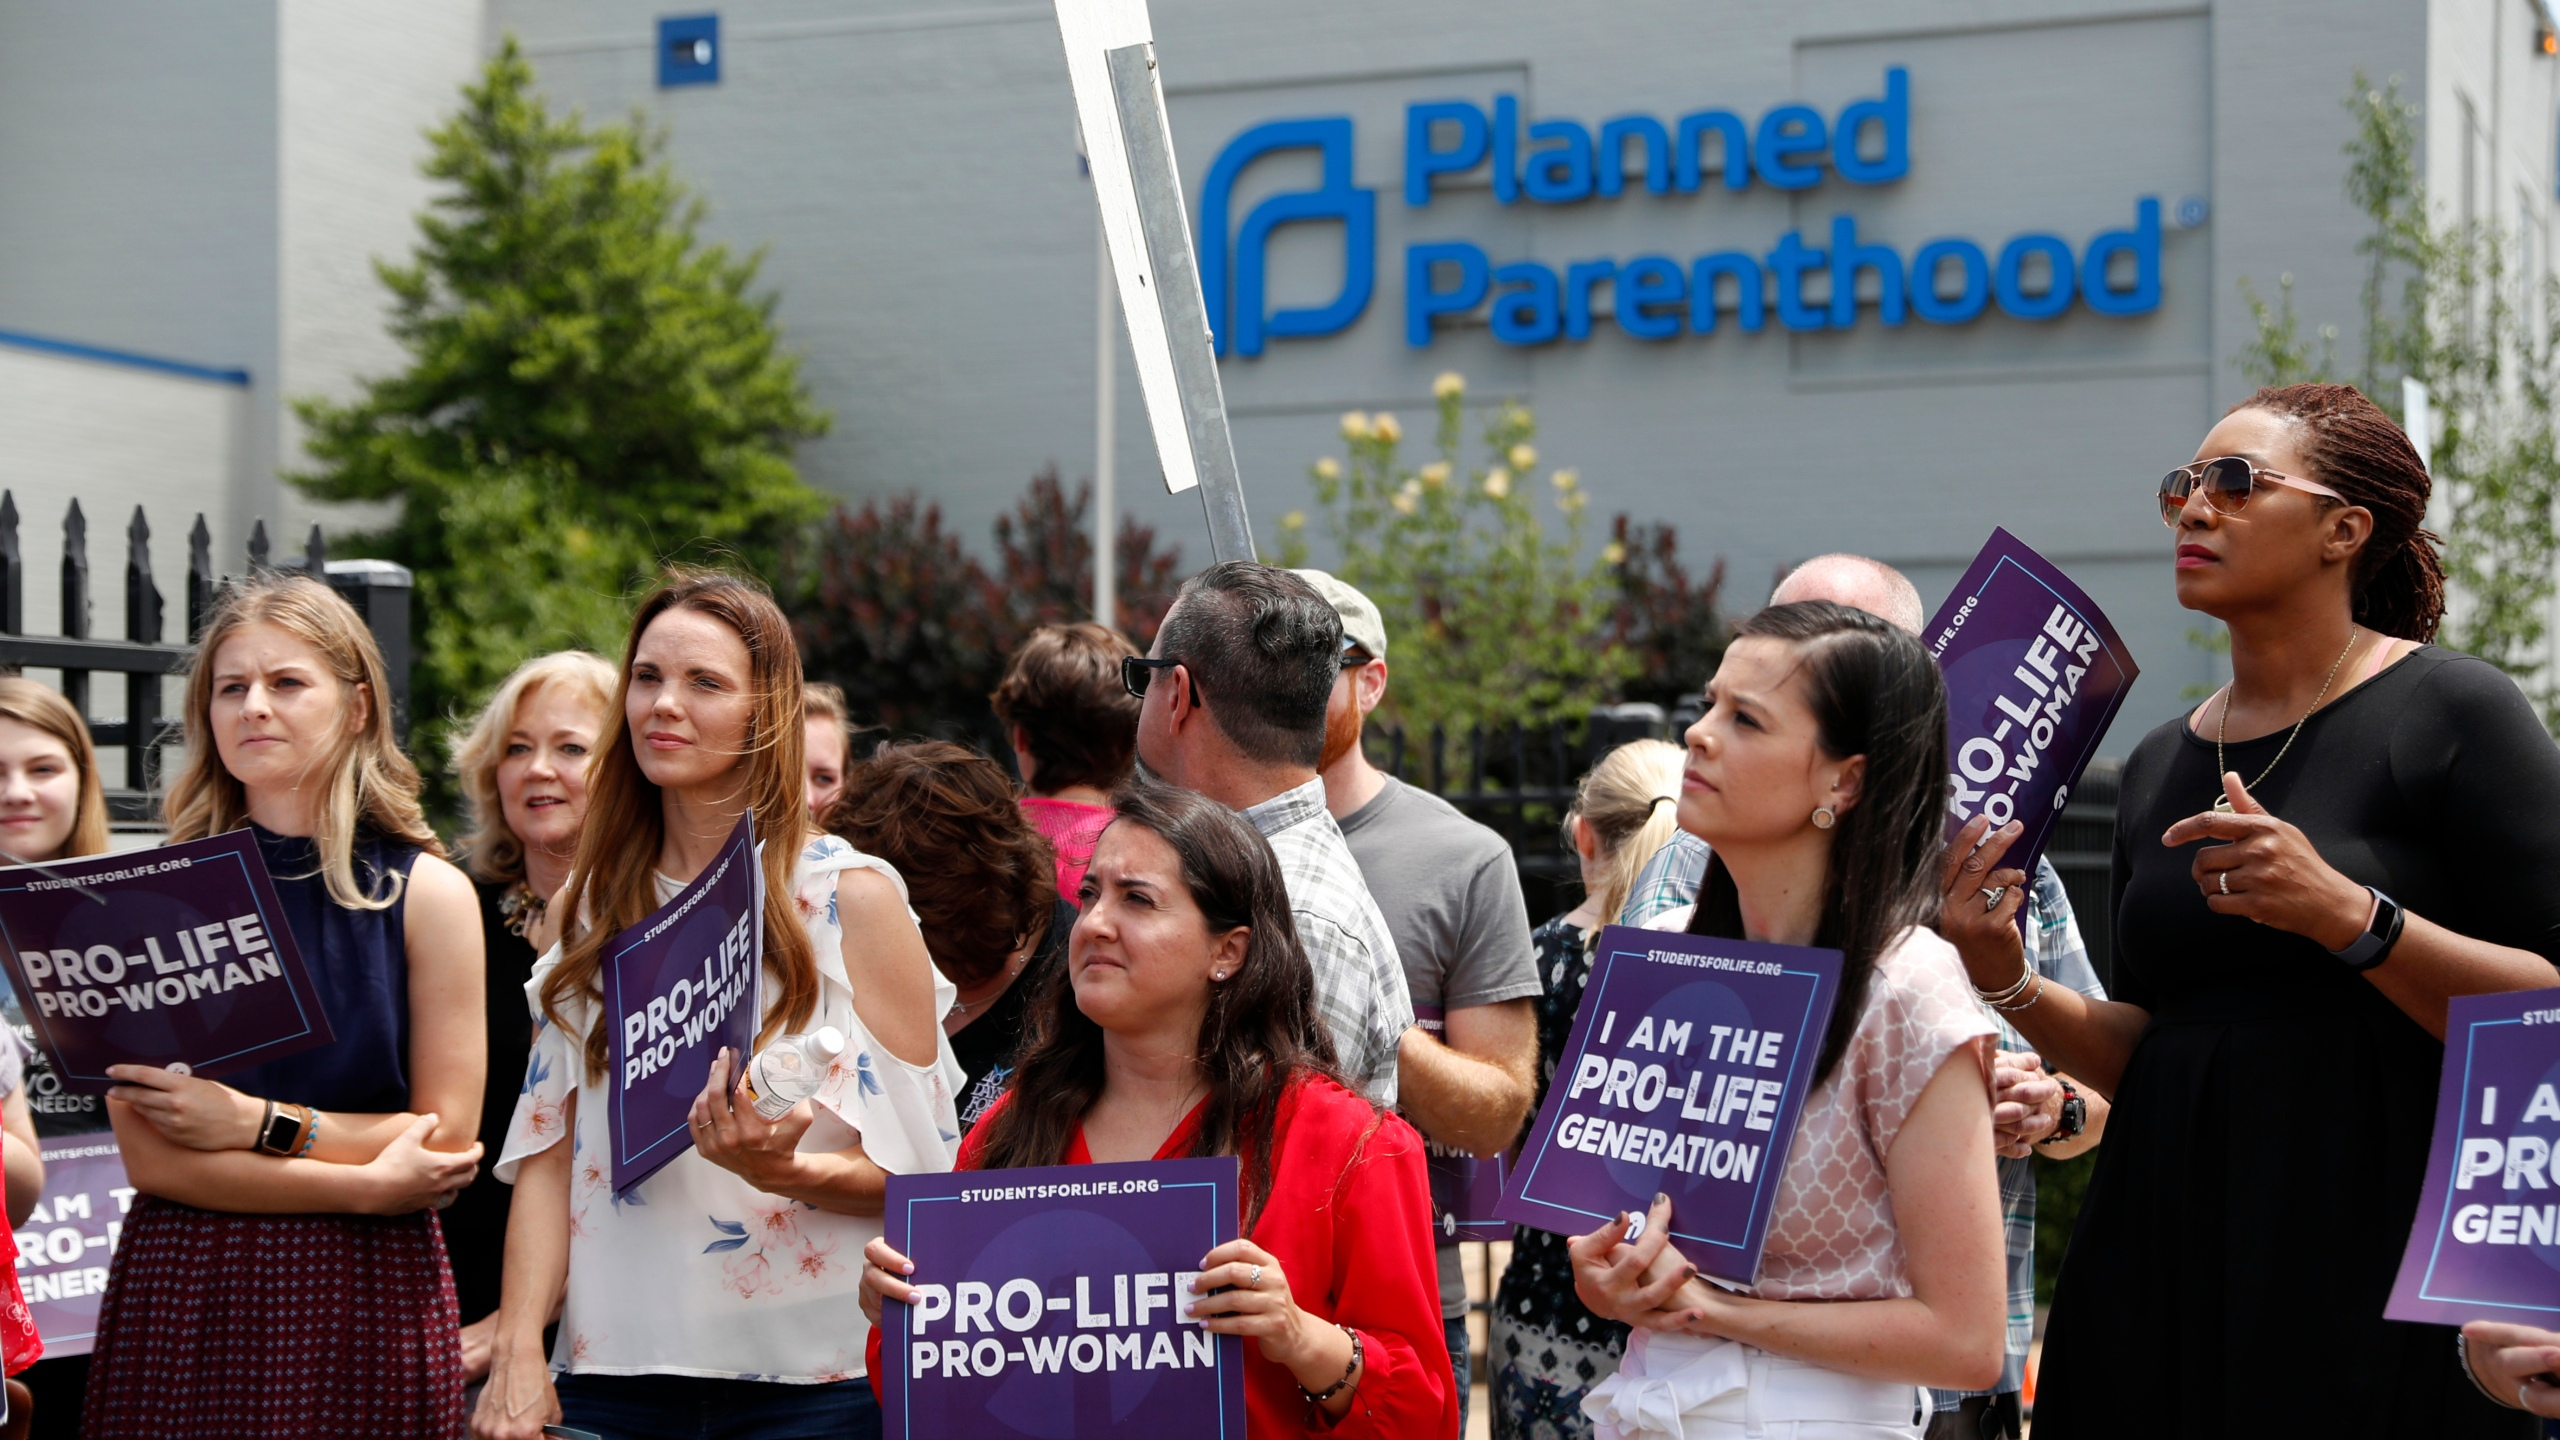 In this June 4, 2019, file photo, anti-abortion advocates gather outside the Planned Parenthood clinic in St. Louis. A federal appeals court on Tuesday, Sept. 21, 2021, will consider whether Missouri can implement a sweeping law aimed at limiting abortions. The law adopted in 2019 would ban abortions at or around the eighth week of pregnancy. It also would prohibit abortions based on a Down syndrome diagnosis. (AP Photo/Jeff Roberson, File)